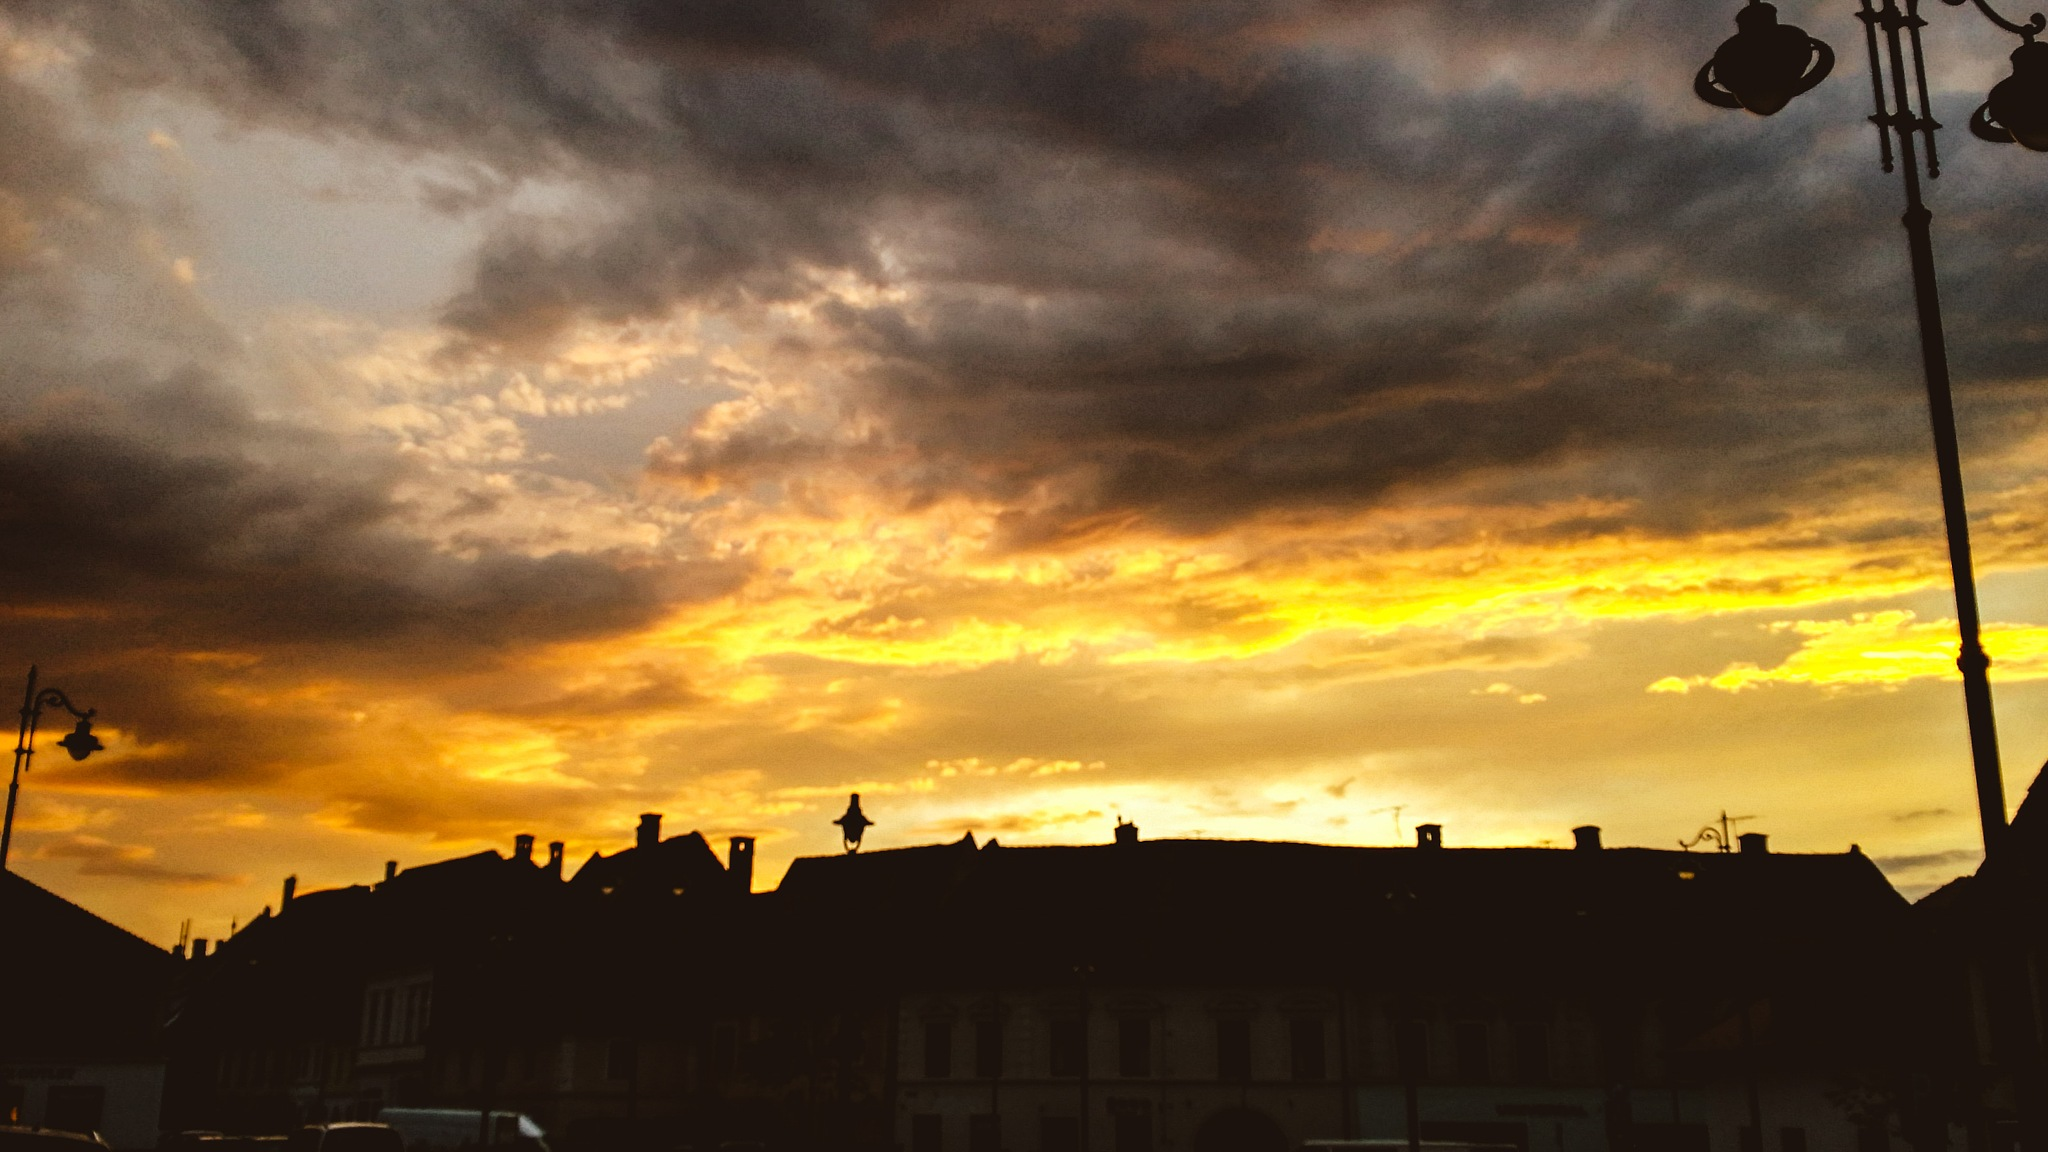 Sunset over Sibiu by Costin0509